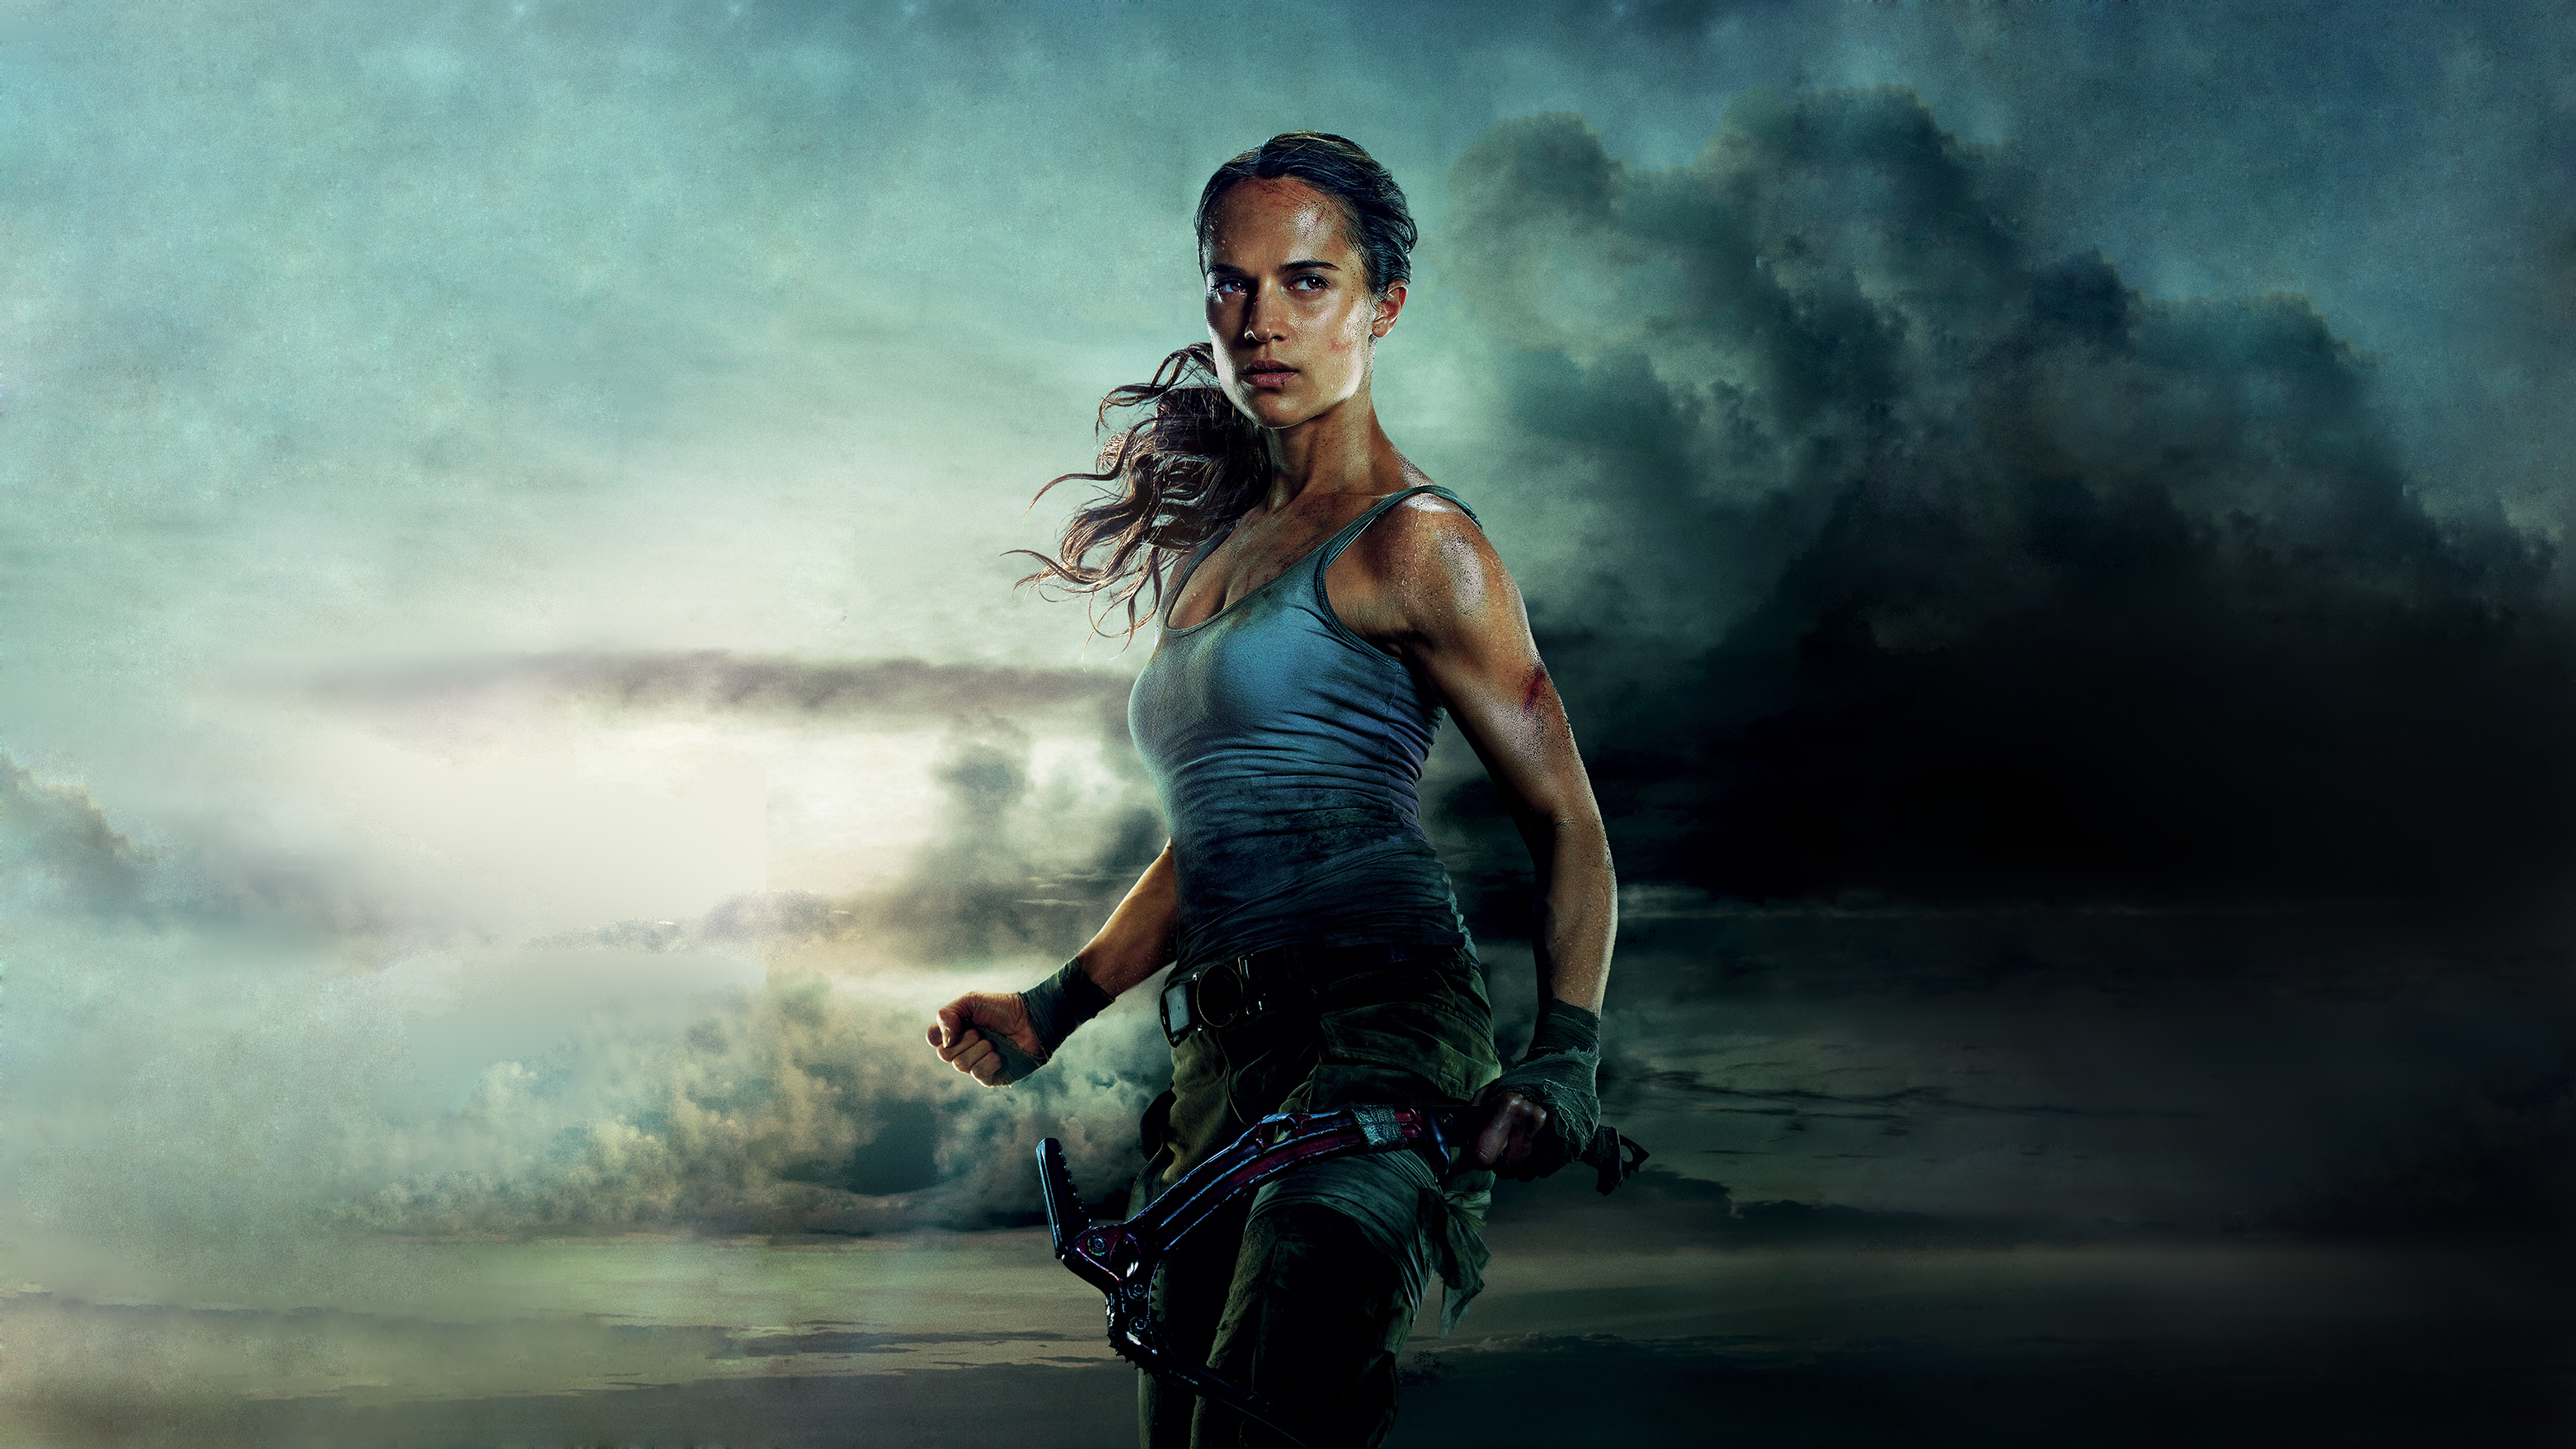 Tomb Raider Movie Wallpapers Top Free Tomb Raider Movie